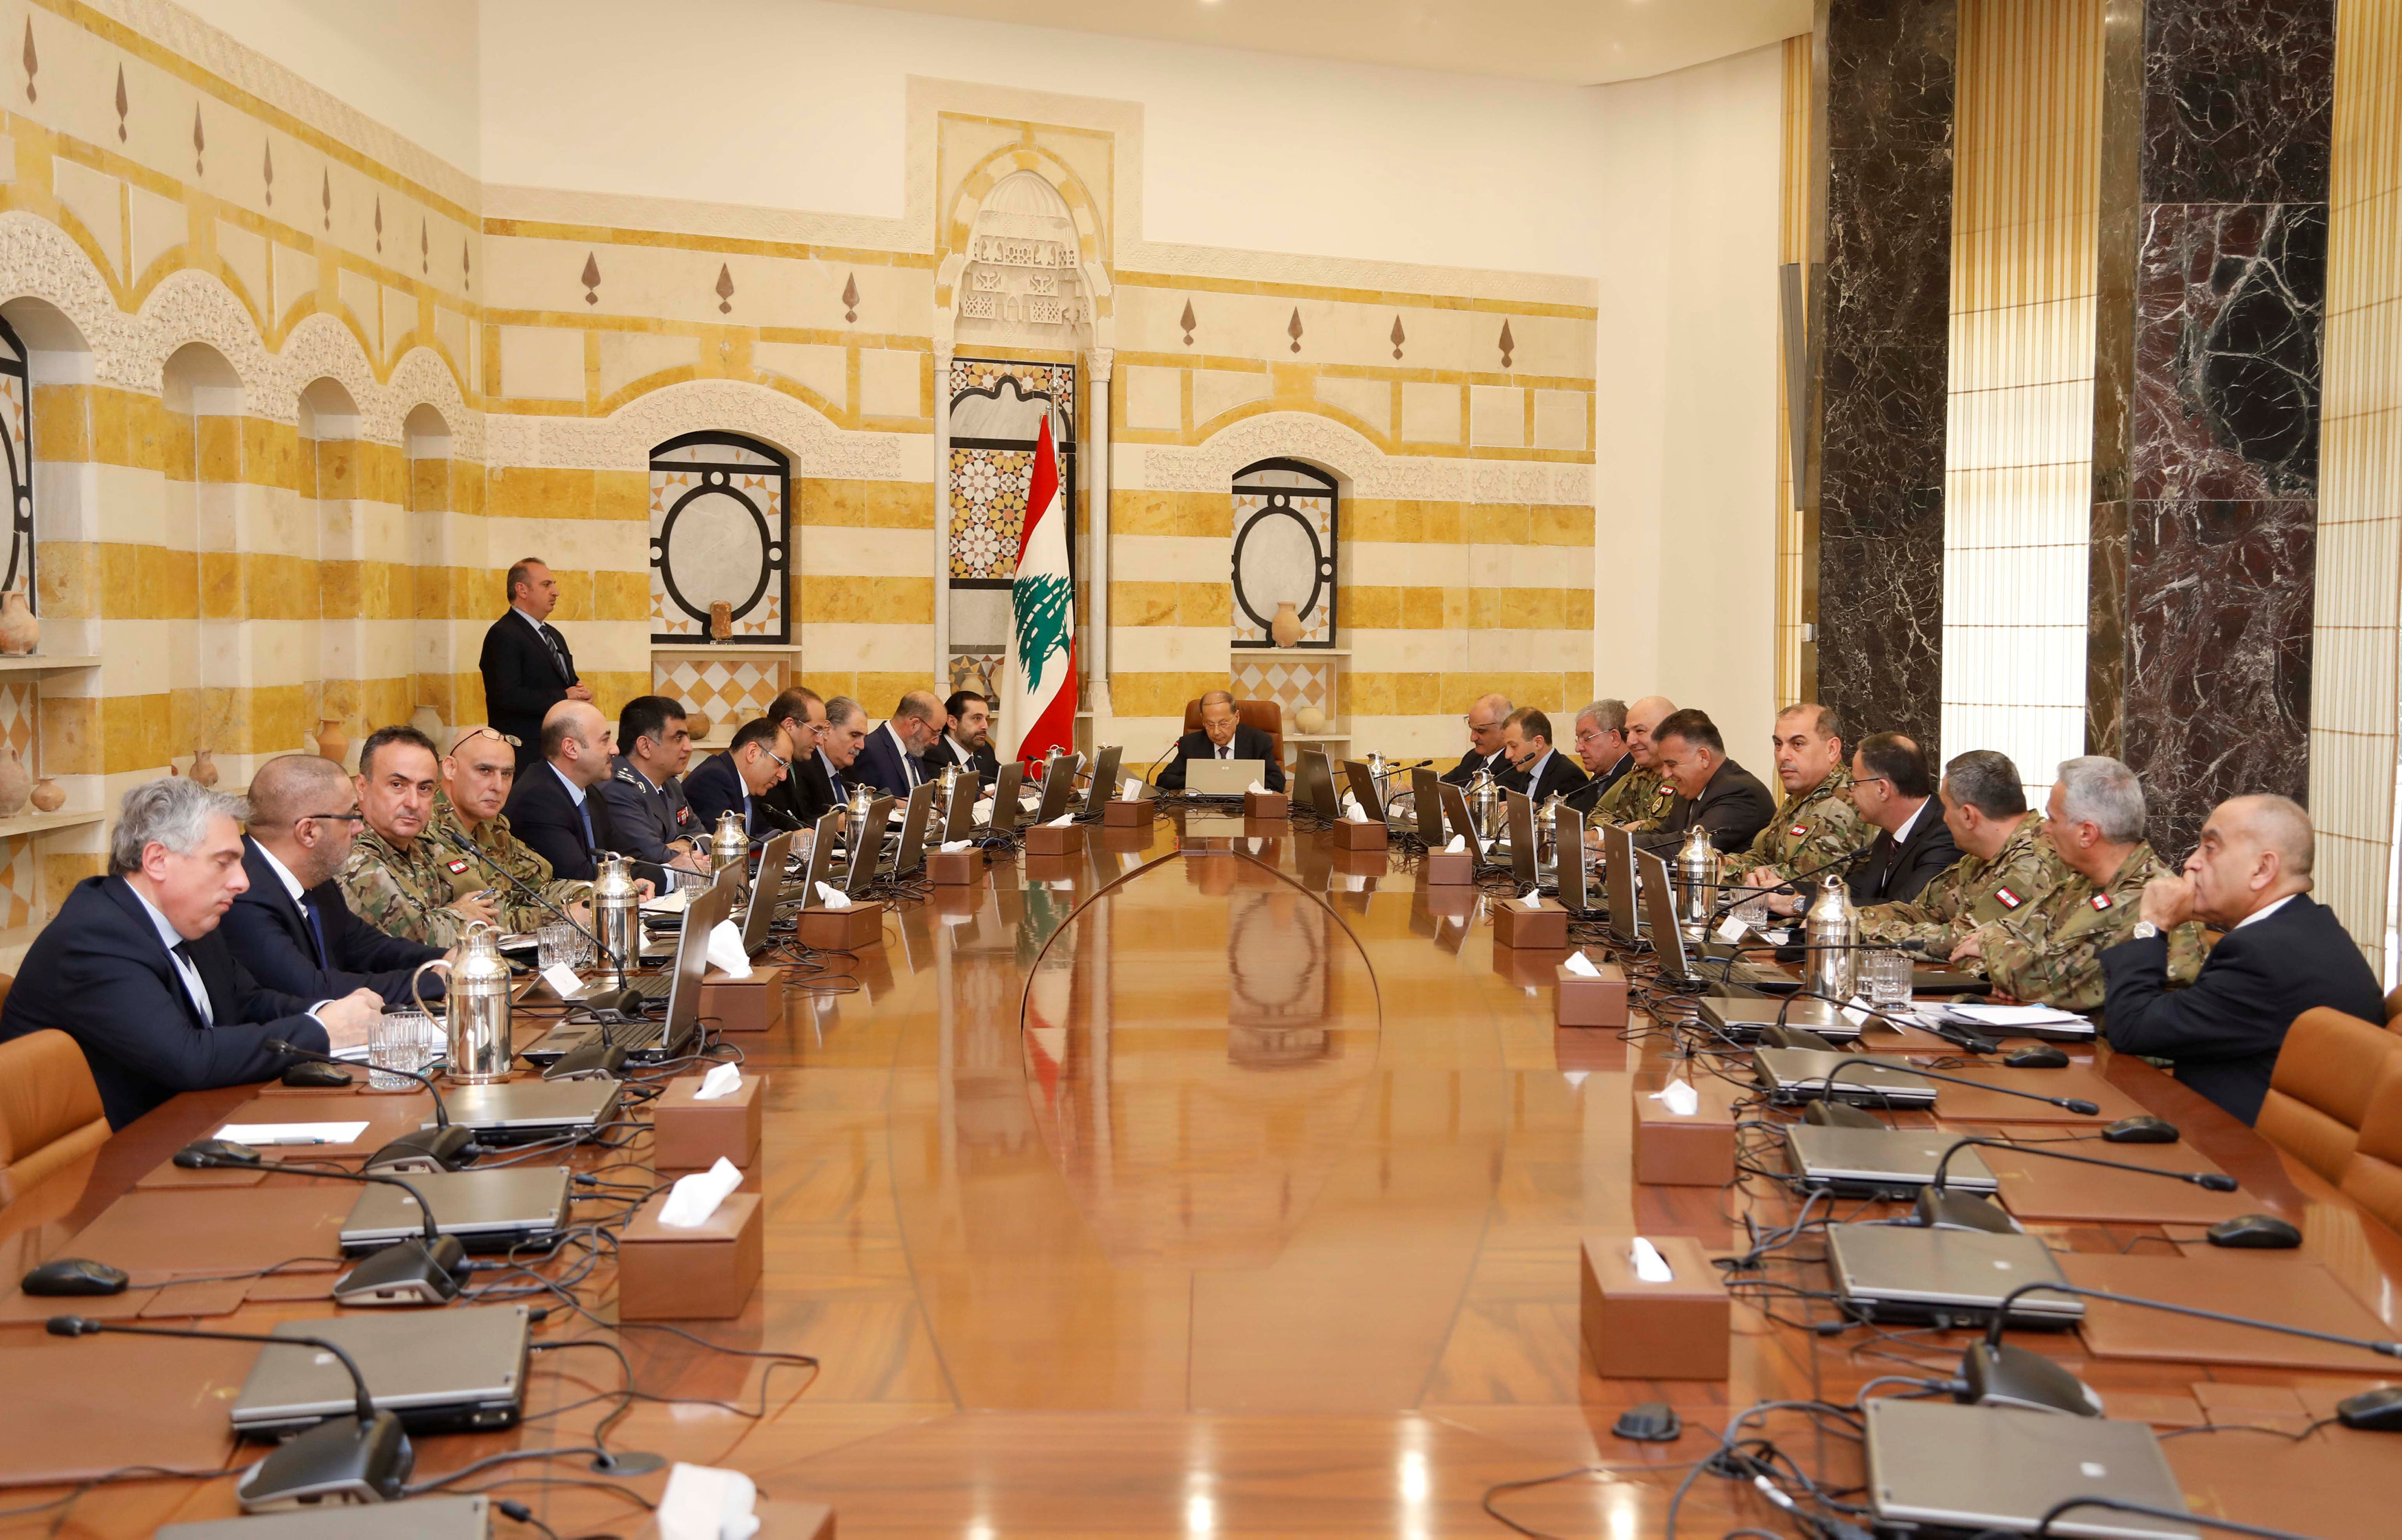 Lebanese President Michel Aoun meets with Lebanon's Higher Defence Council at the presidential palace in Baabda, Lebanon February 7, 2018. Dalati Nohra/Handout via REUTERS ATTENTION EDITORS - THIS IMAGE WAS PROVIDED BY A THIRD PARTY